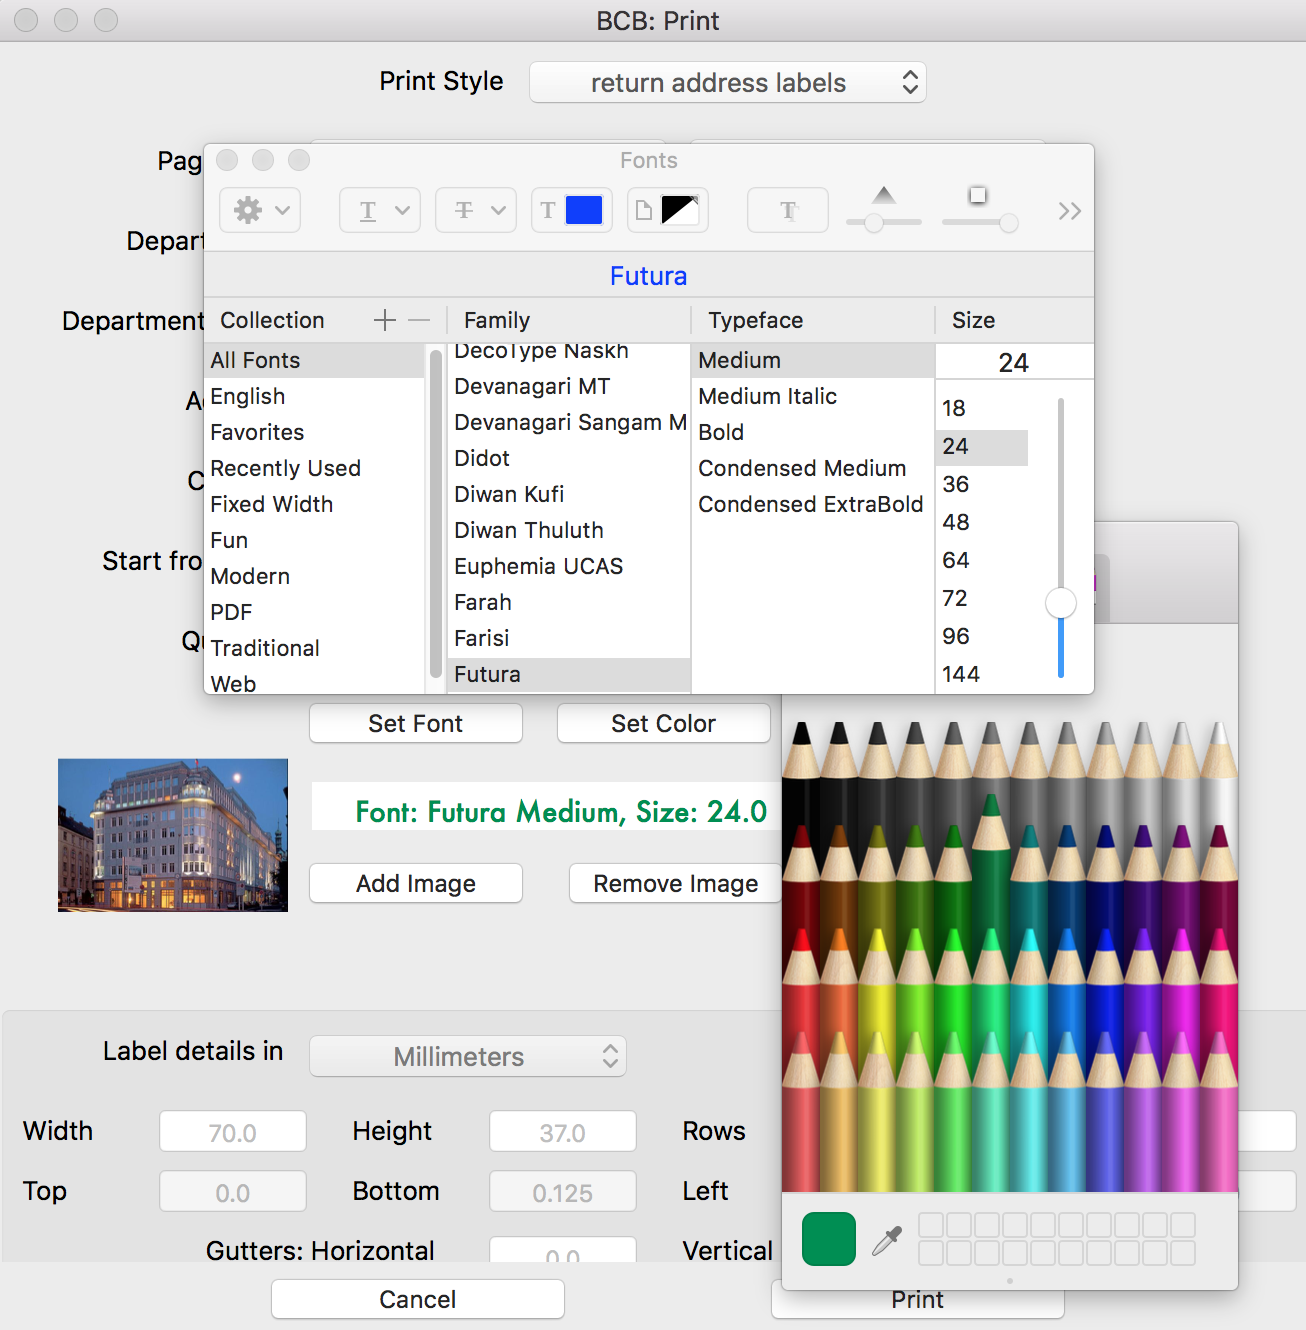 Customize mailing labels by adding an image and changing font size and color